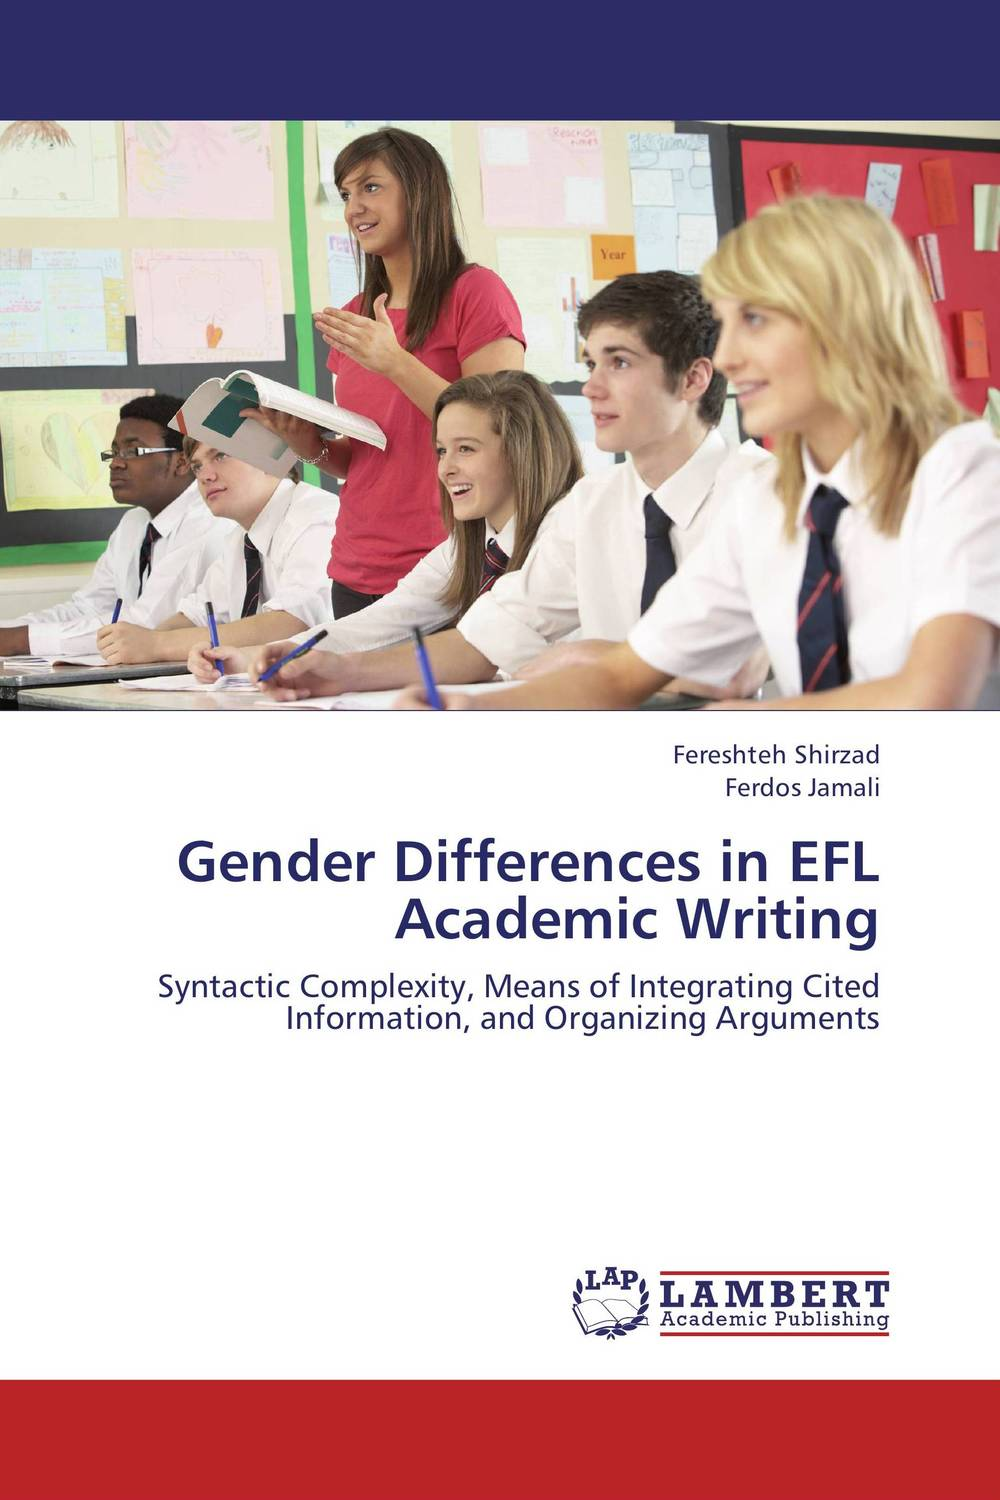 Gender Differences in EFL Academic Writing